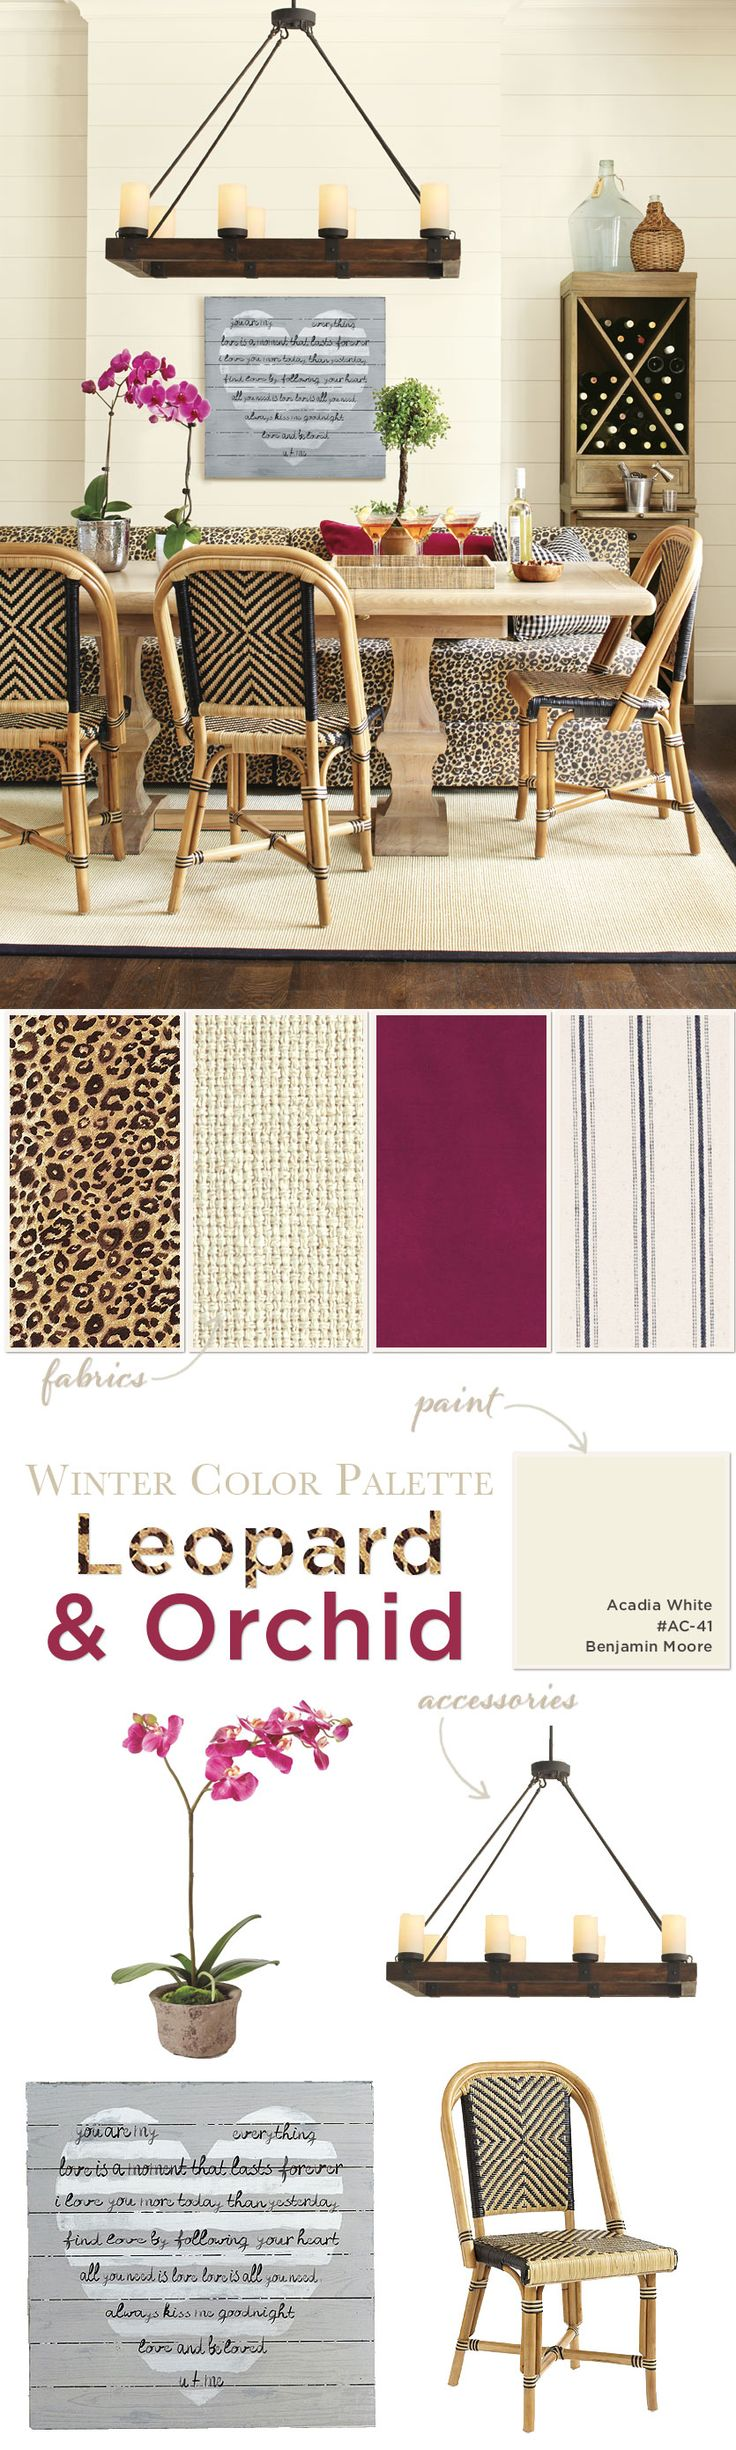 Dining room color palette with leopard print and magenta accents